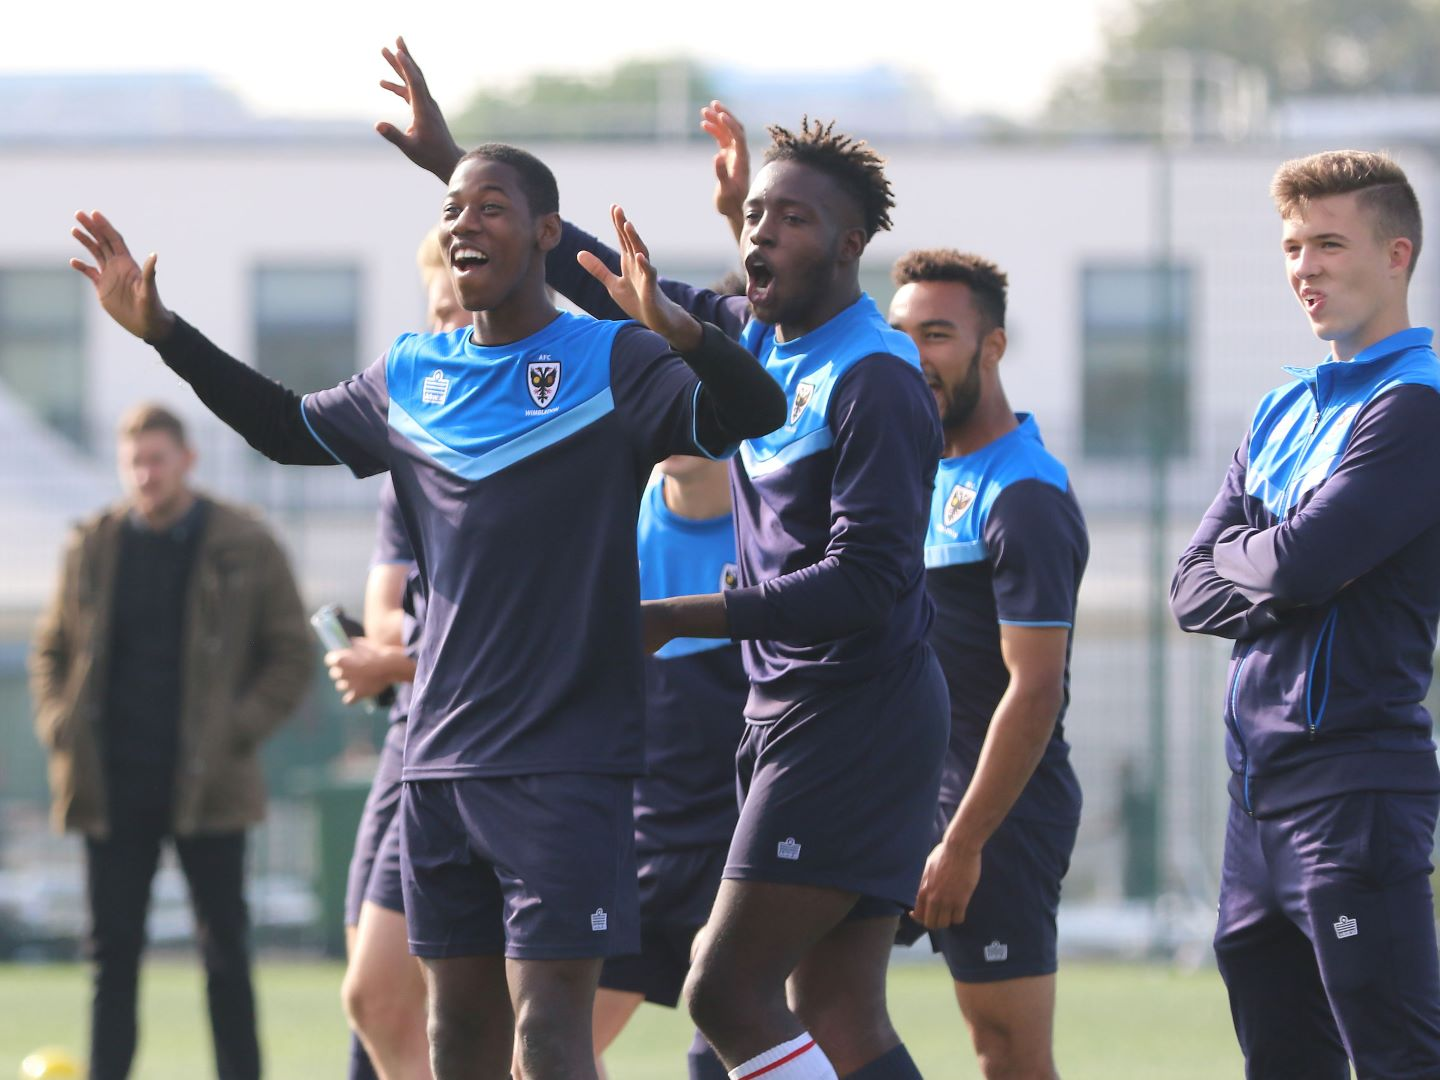 Players celebrating during training at the Southfields Academy